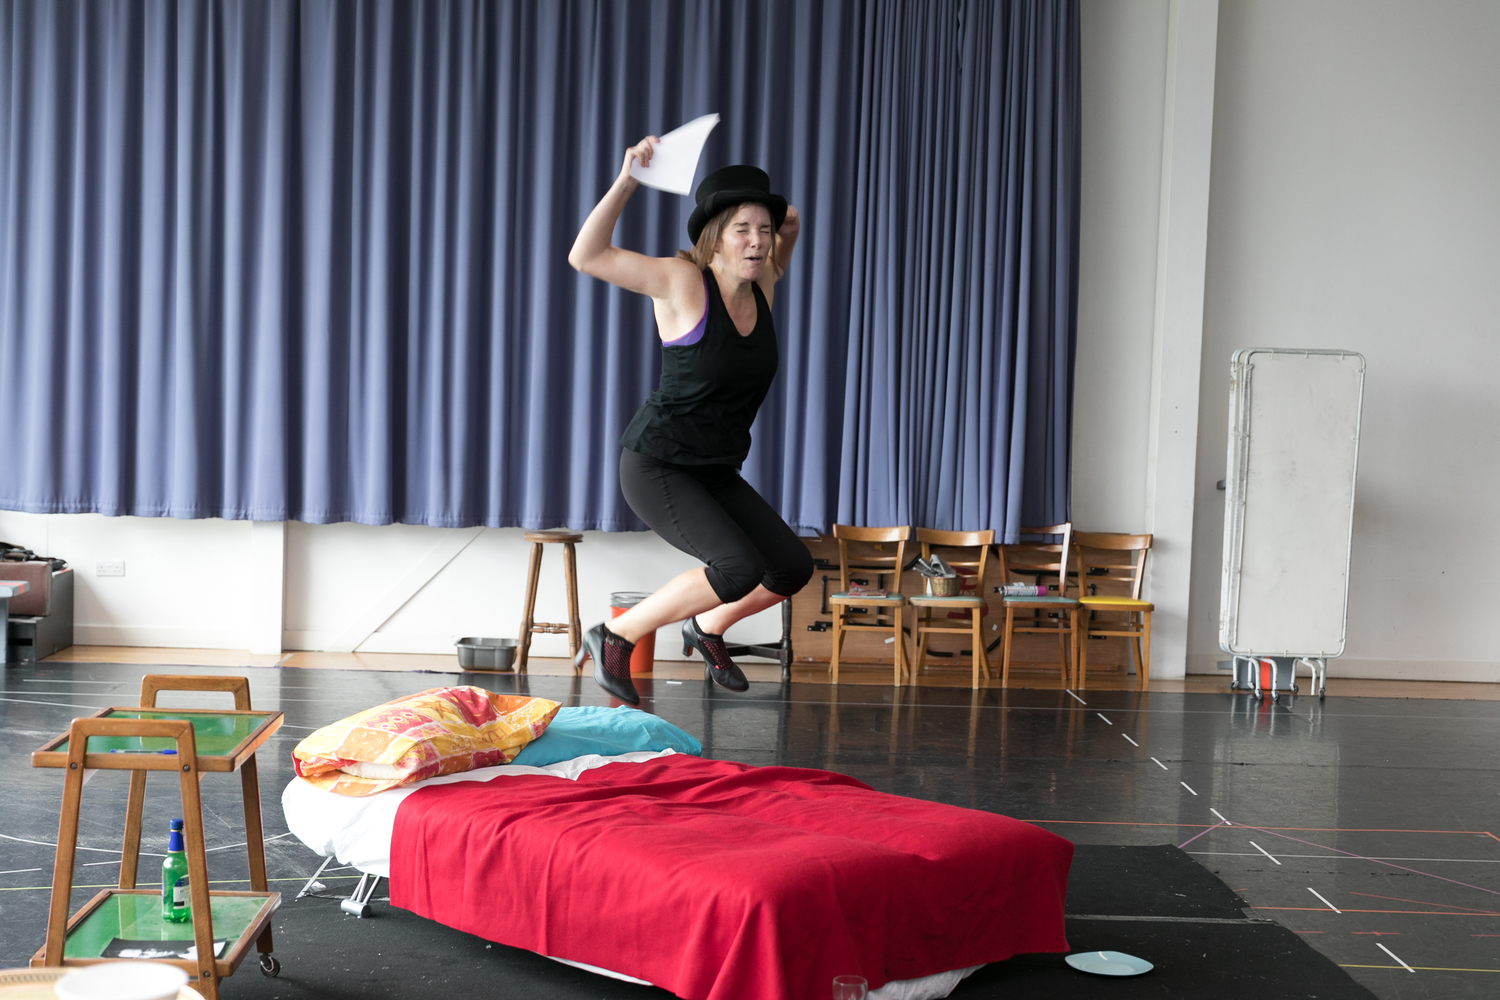 Sweet Charity in Rehearsal, photography by Darren Bell